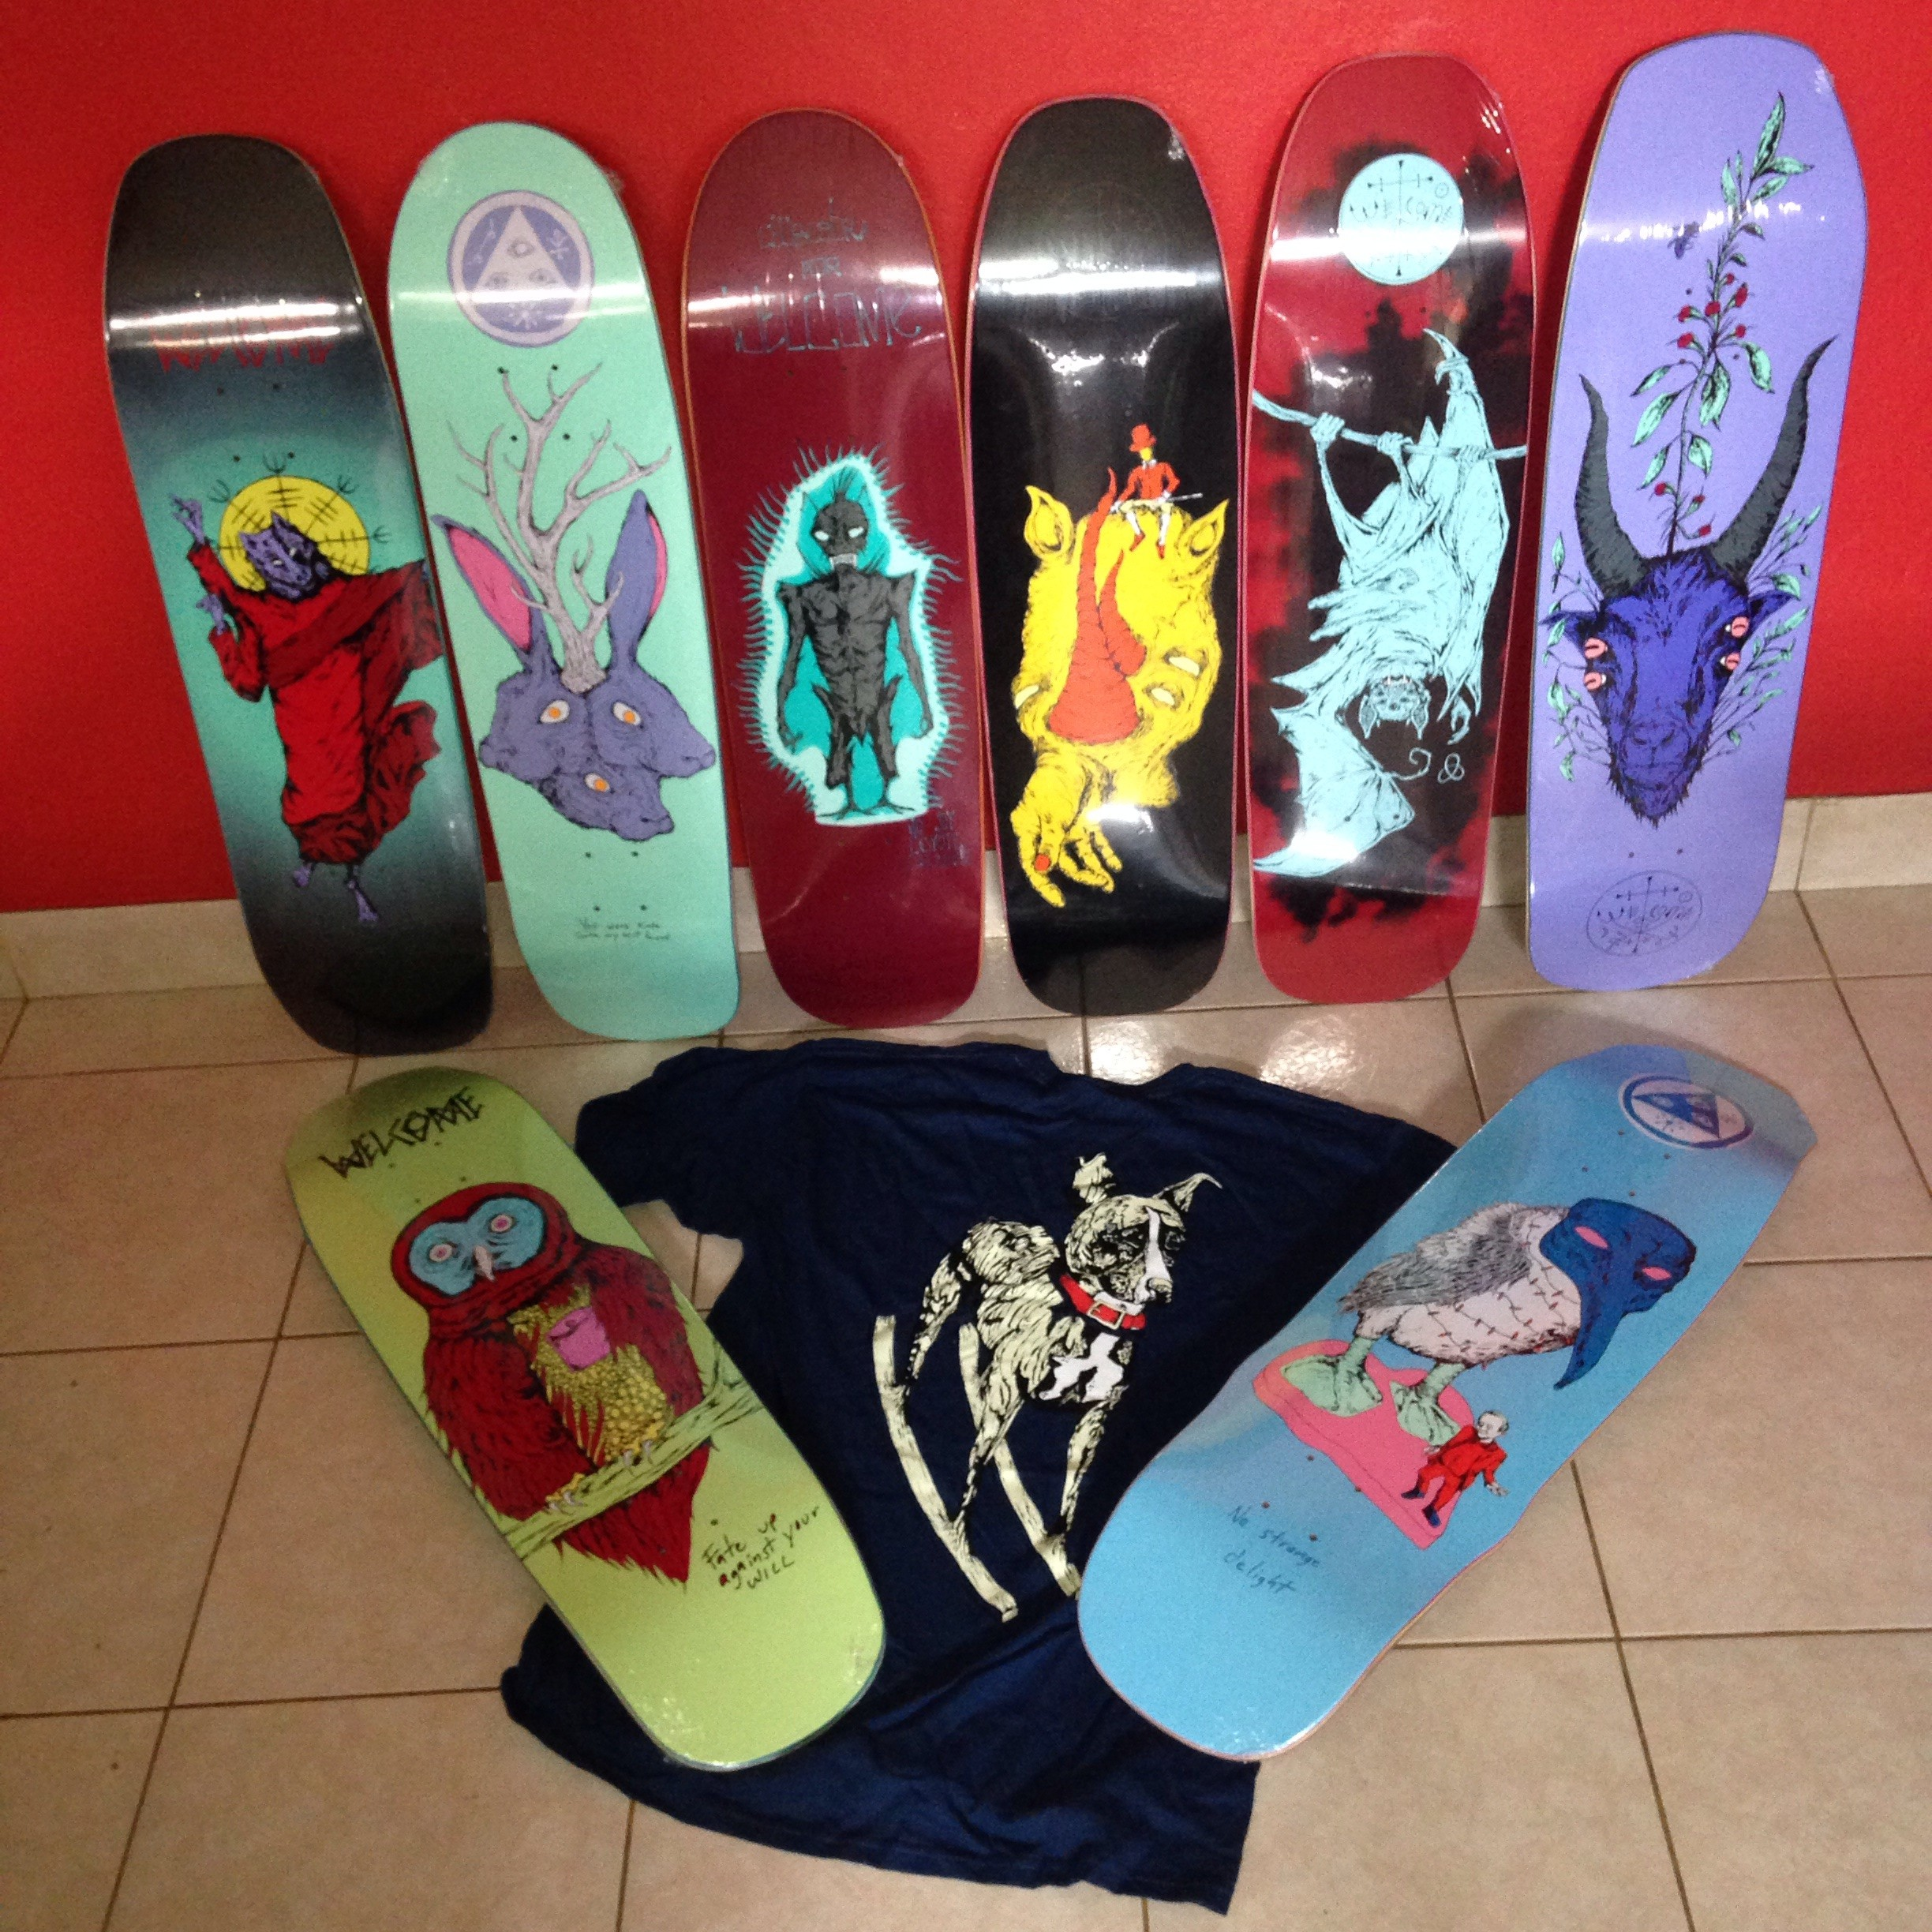 All new welcome skateboards from the Autumn peculiarities collection!